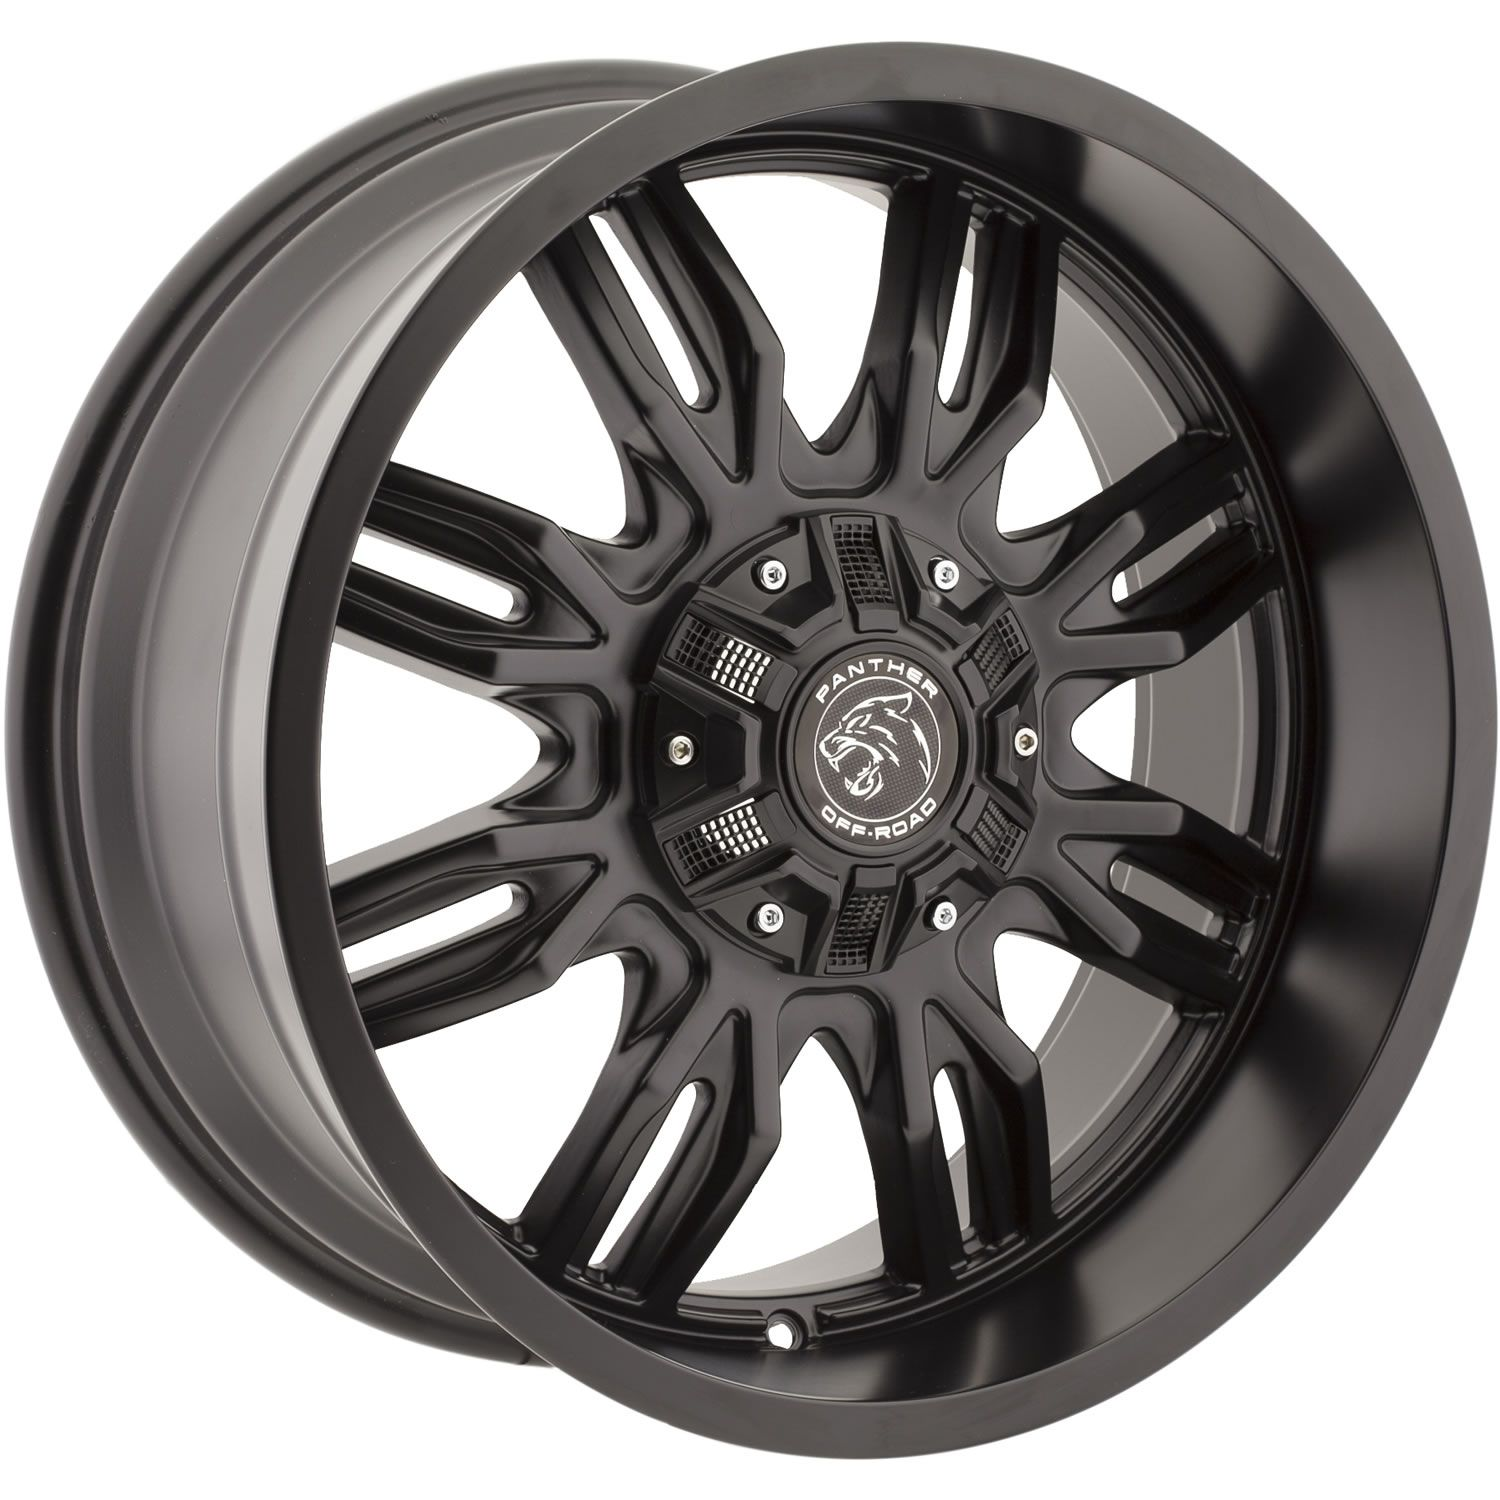 20x9 Black Panther Offroad 580 6x4 5 6x5 5 12 Wheels 35x12 50r20lt Tires Black Wheels Wheel Rims Jeep Wheels